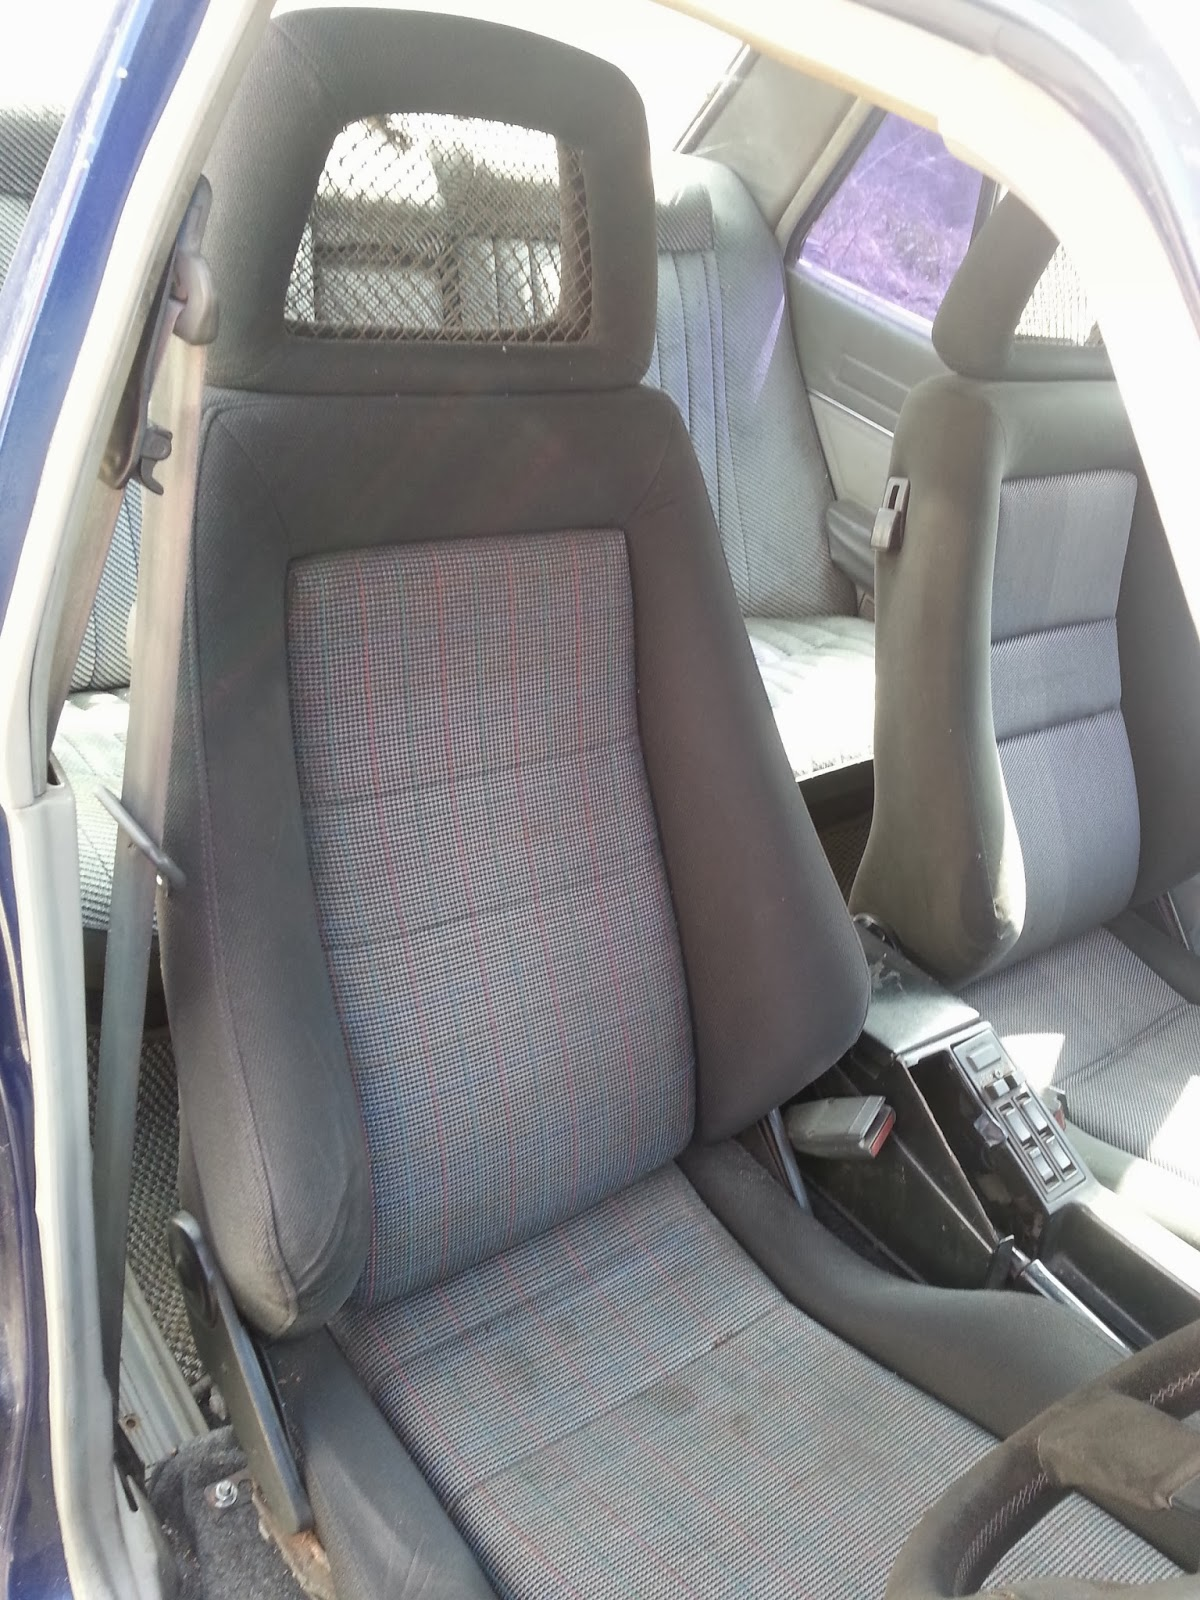 Used Car Seats For Sale Luxury Seat Recaro Fishnet With Railing